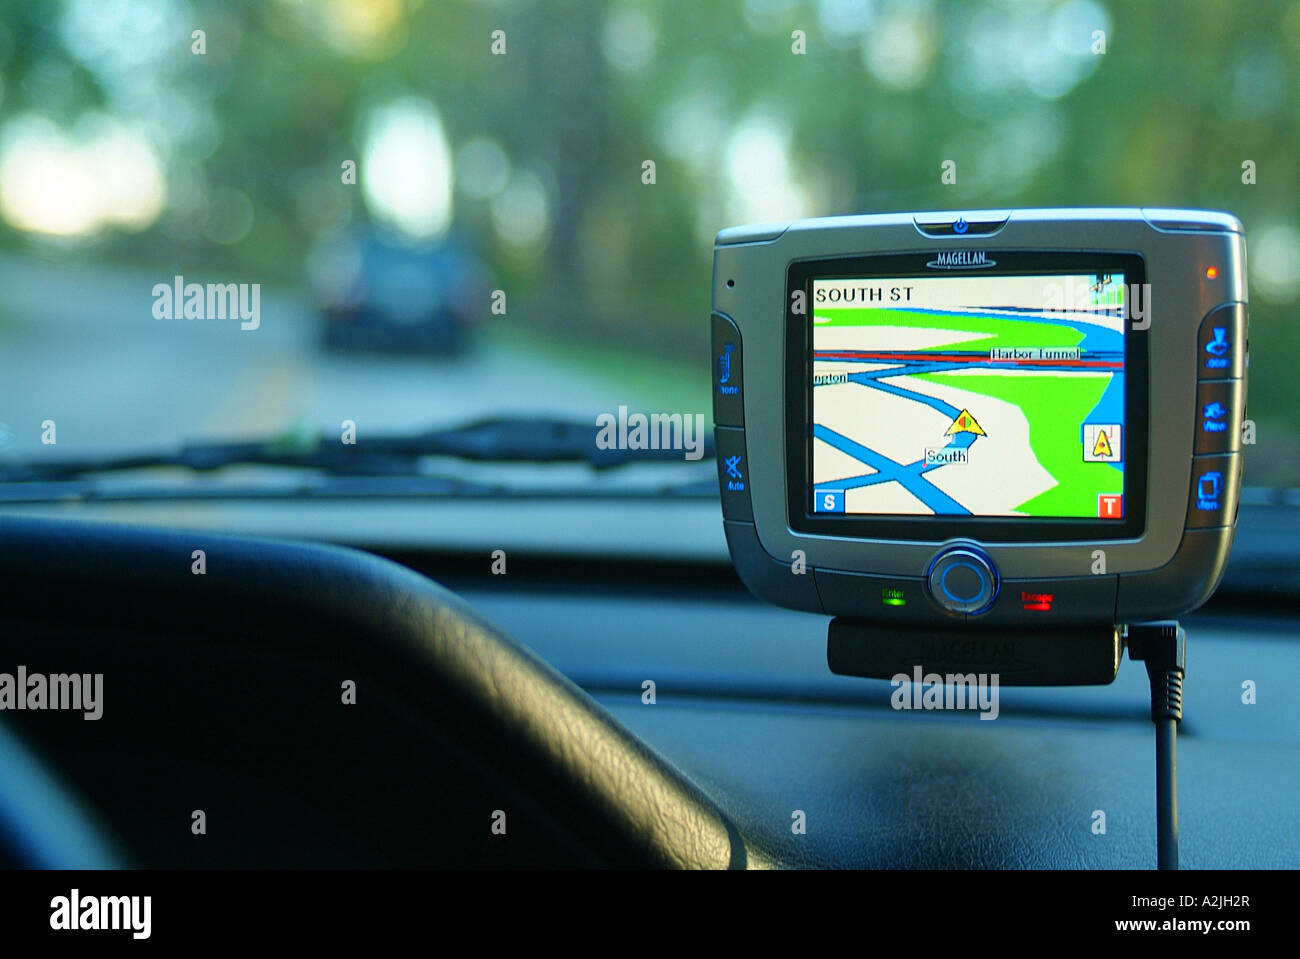 a-magellan-roadmate-6000t-gps-unit-helps-the-driver-find-streets-and-A2JH2R.jpg